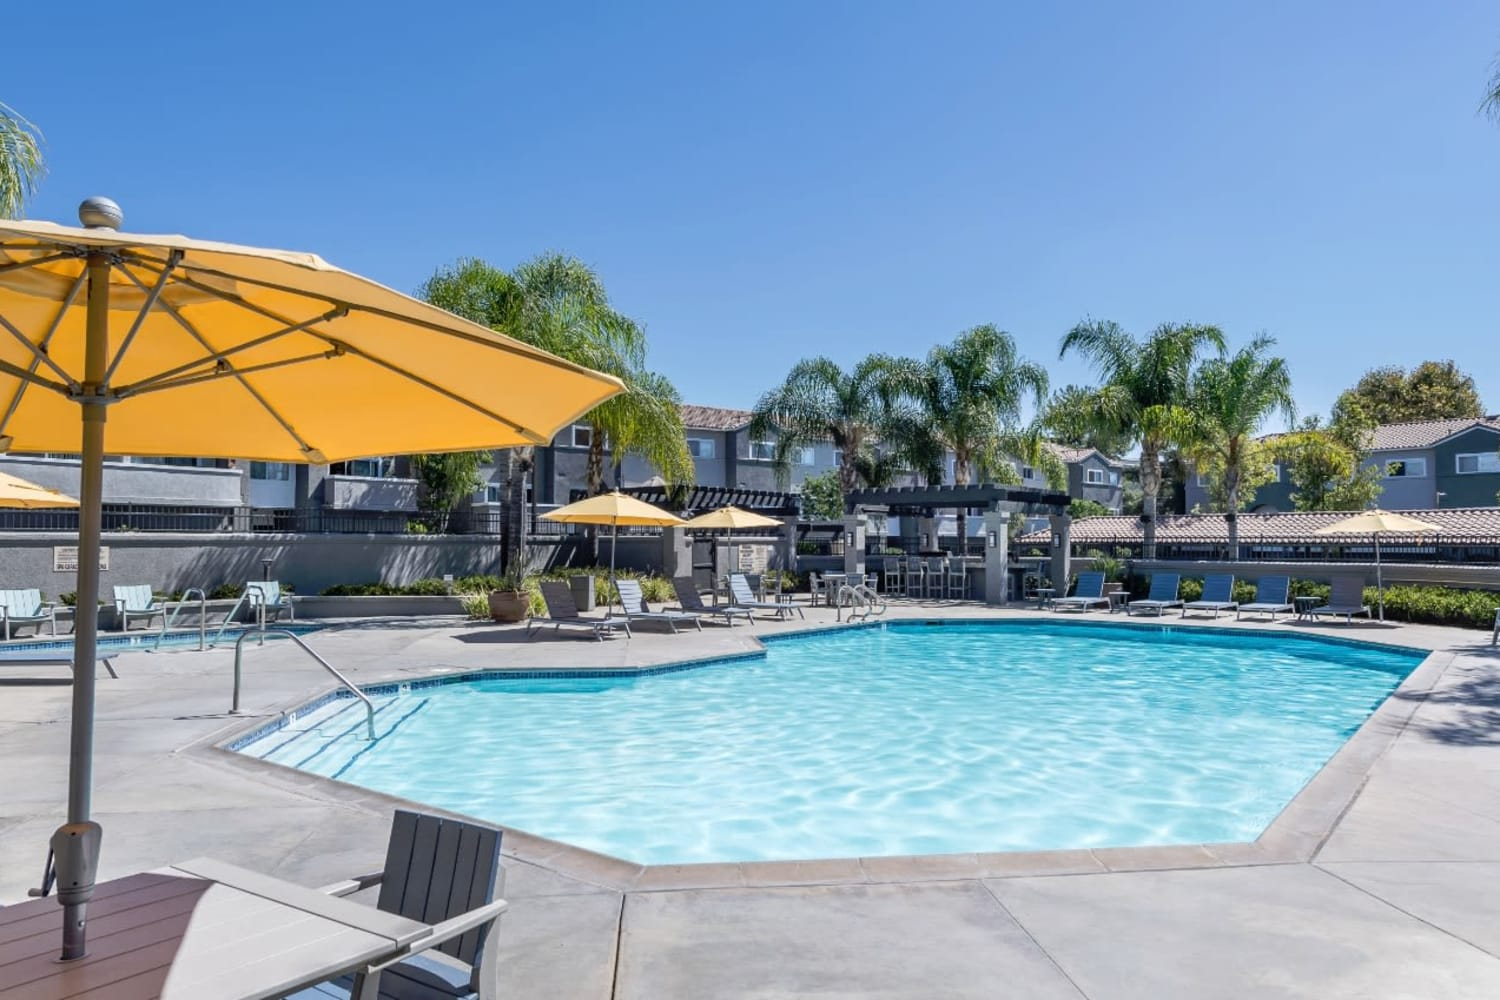 Swimming pool at Madrid Apartments in Mission Viejo, California